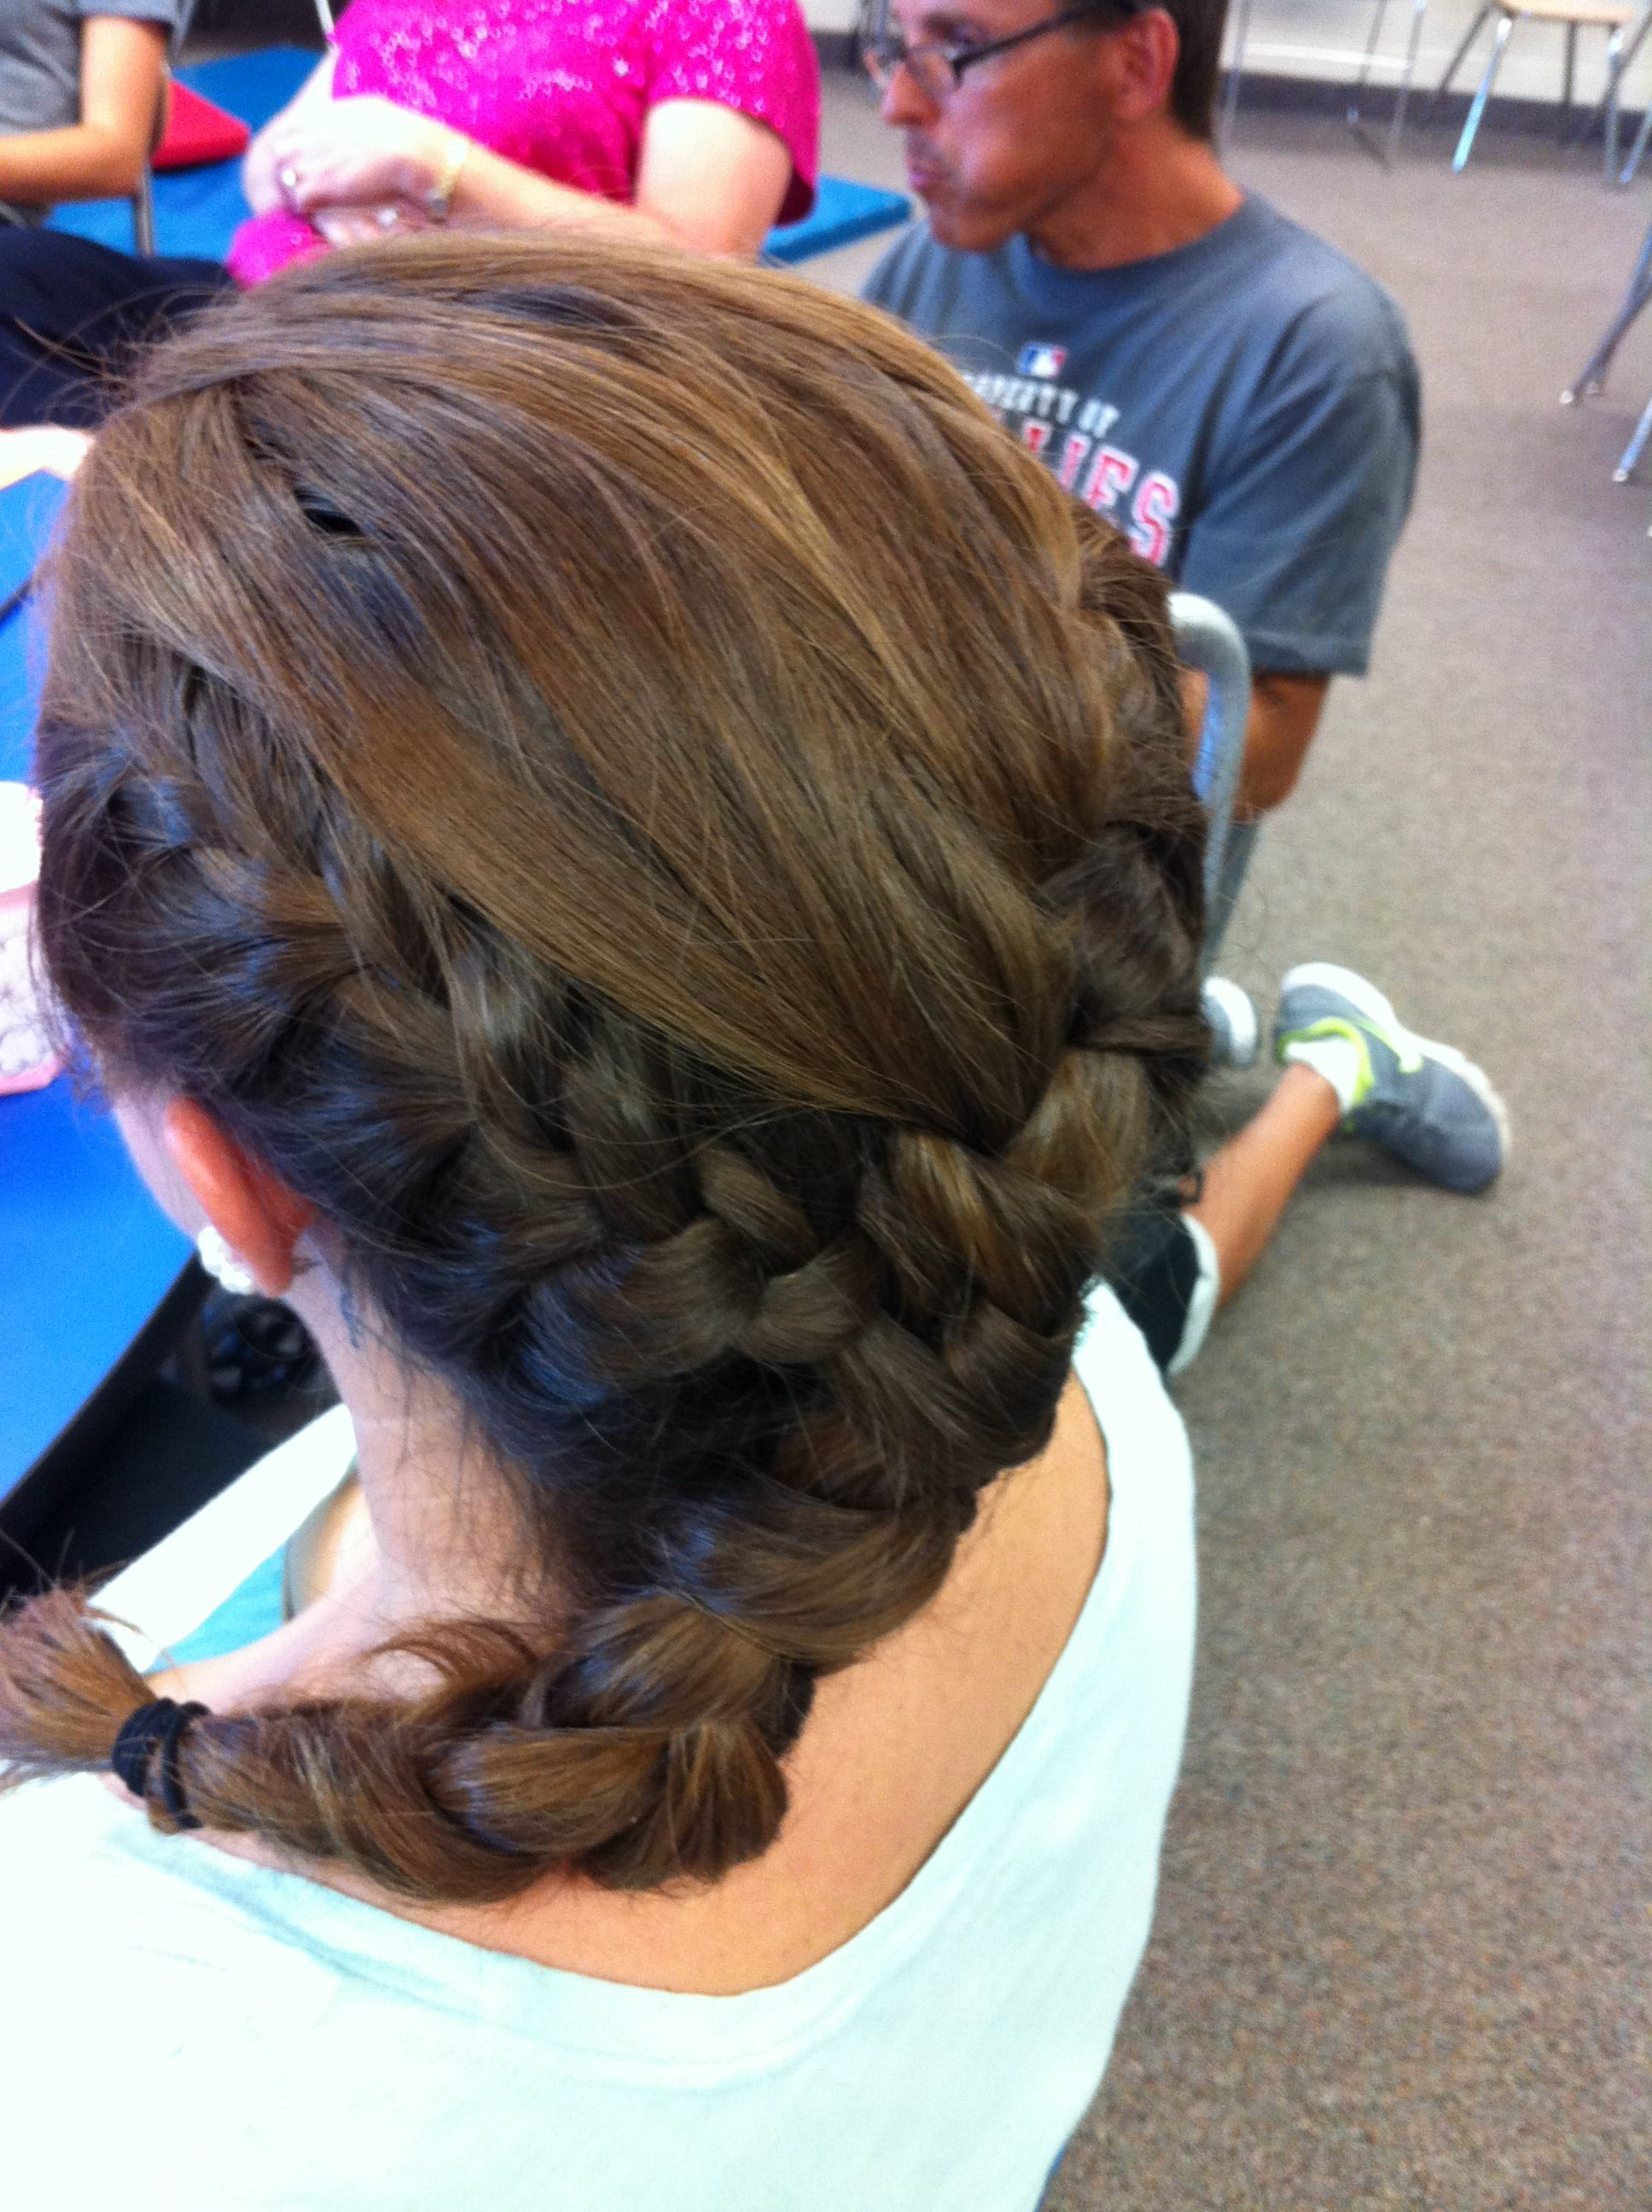 2 French Braids Connected Together Hair Styles French Braid Double French Braids